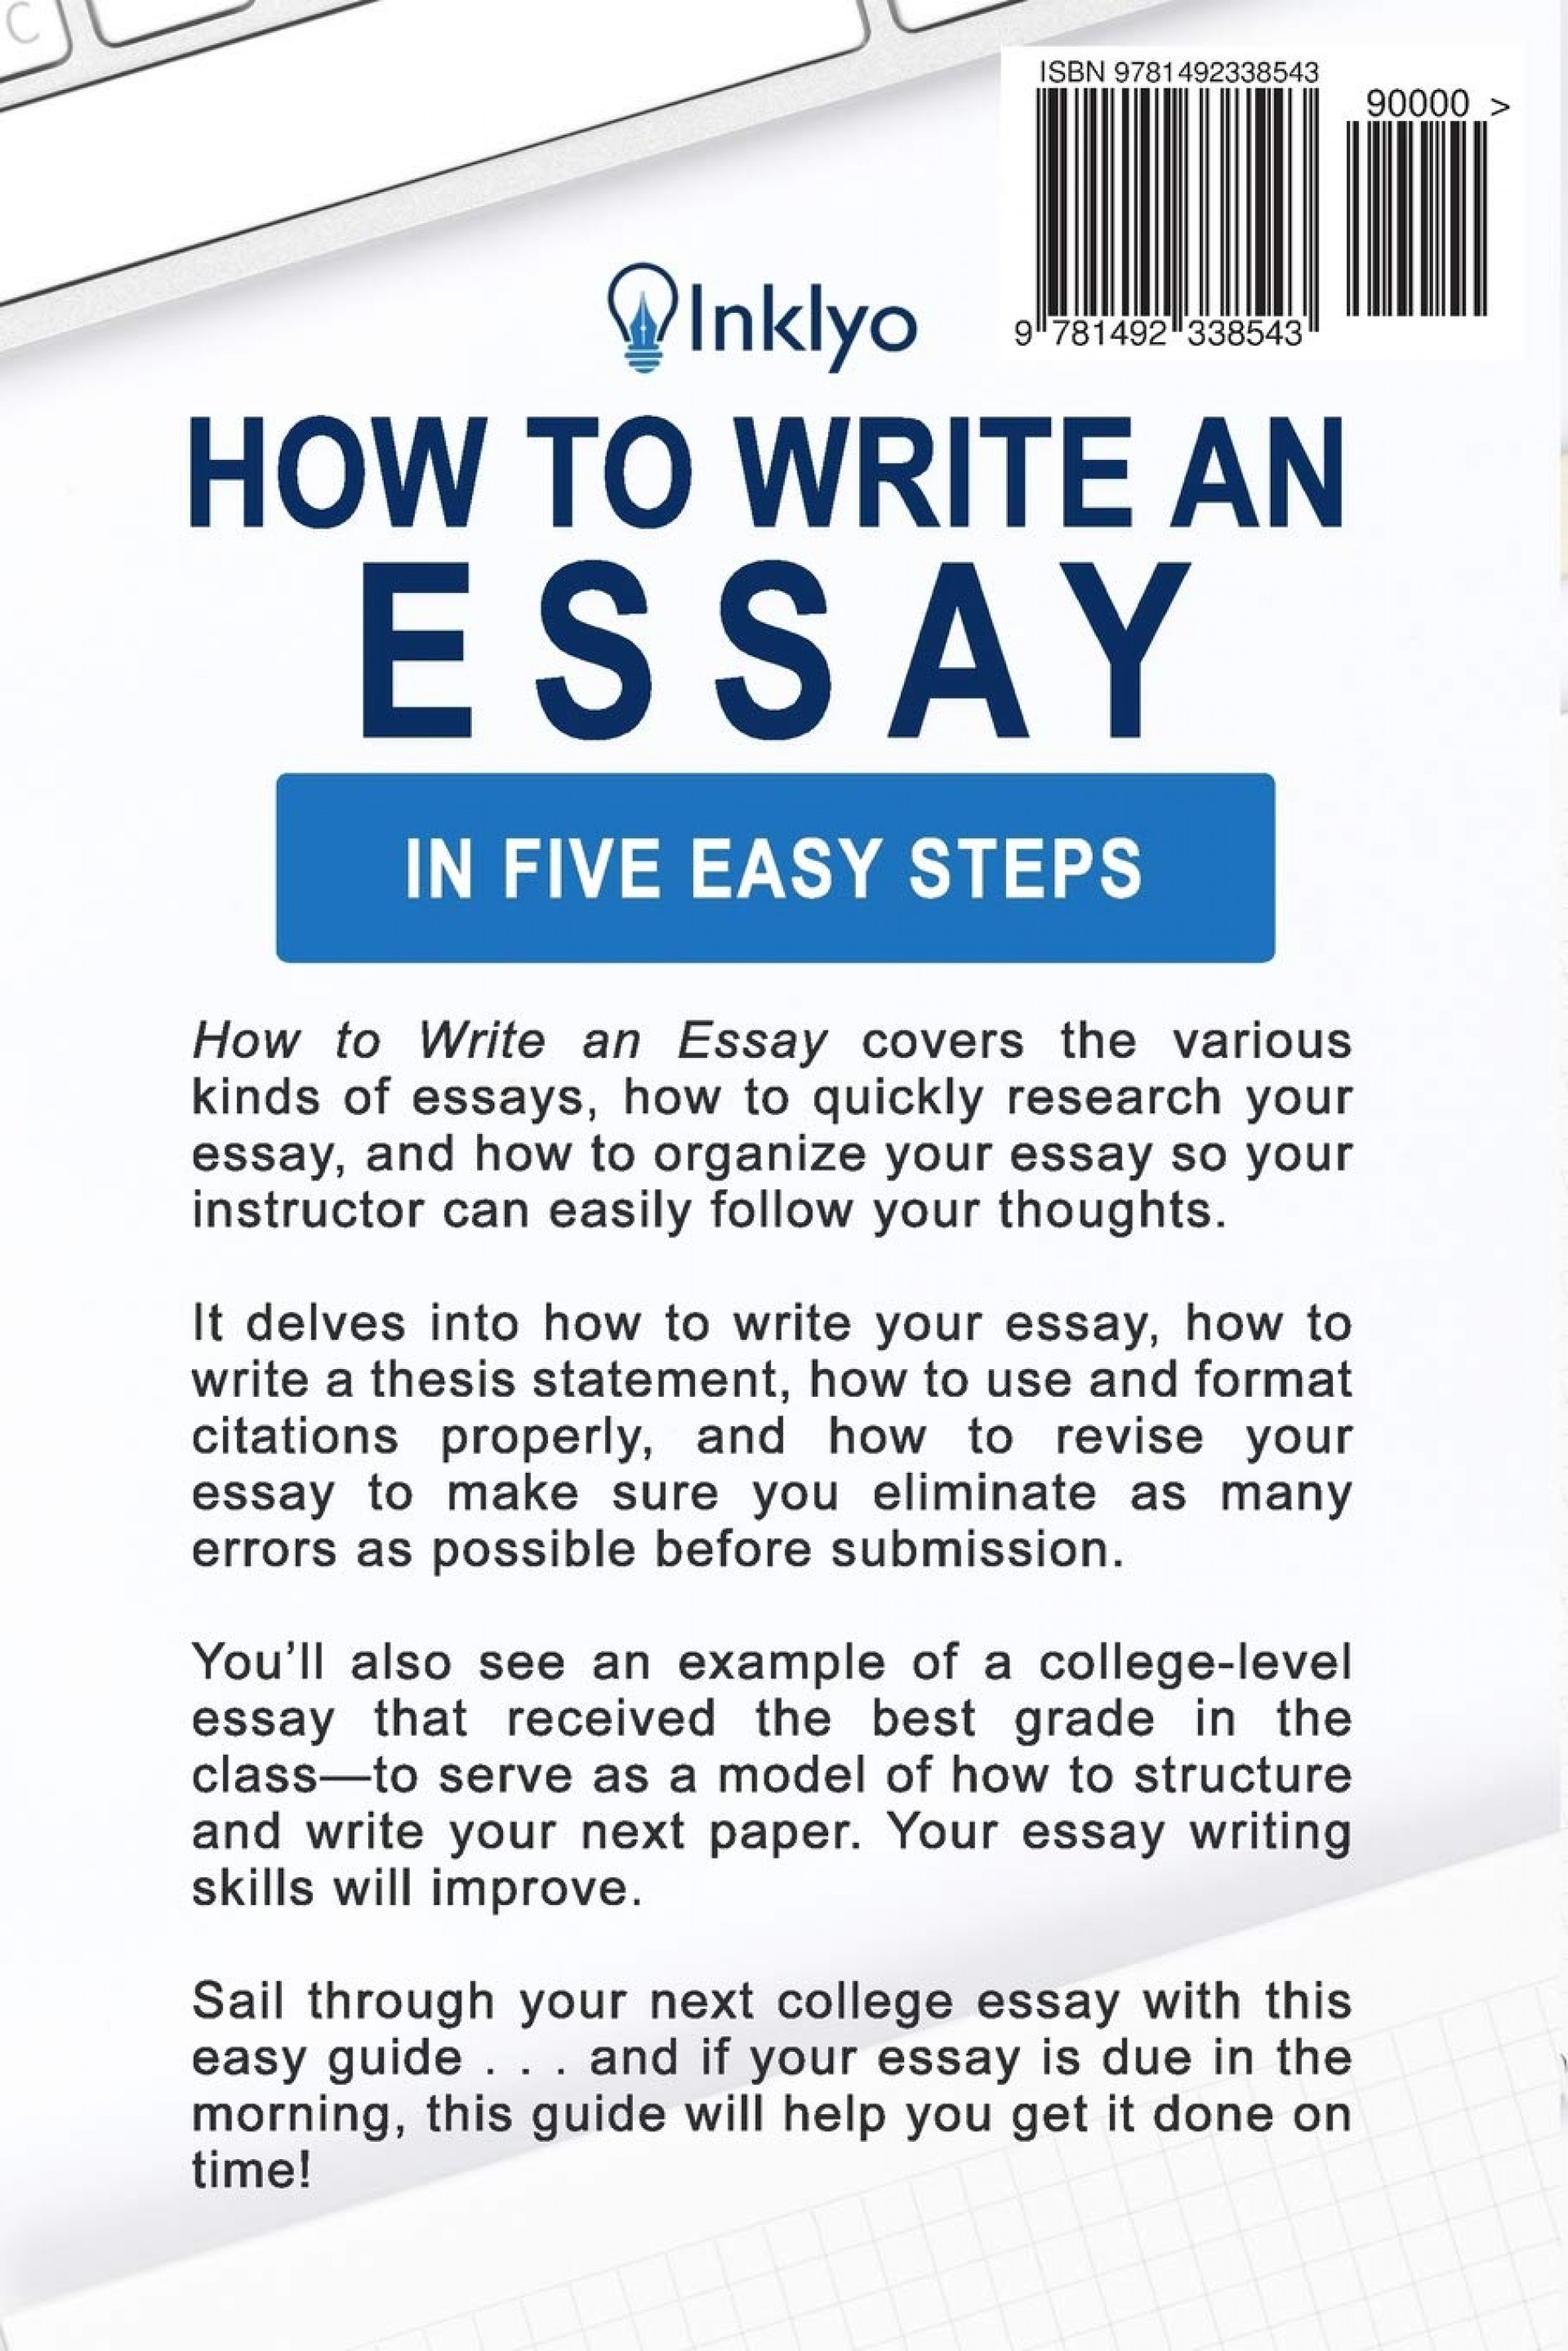 013 Essay Example 71v7ckw5pll Writing Striking A Creative About Yourself College Outline 5 Steps To 1920